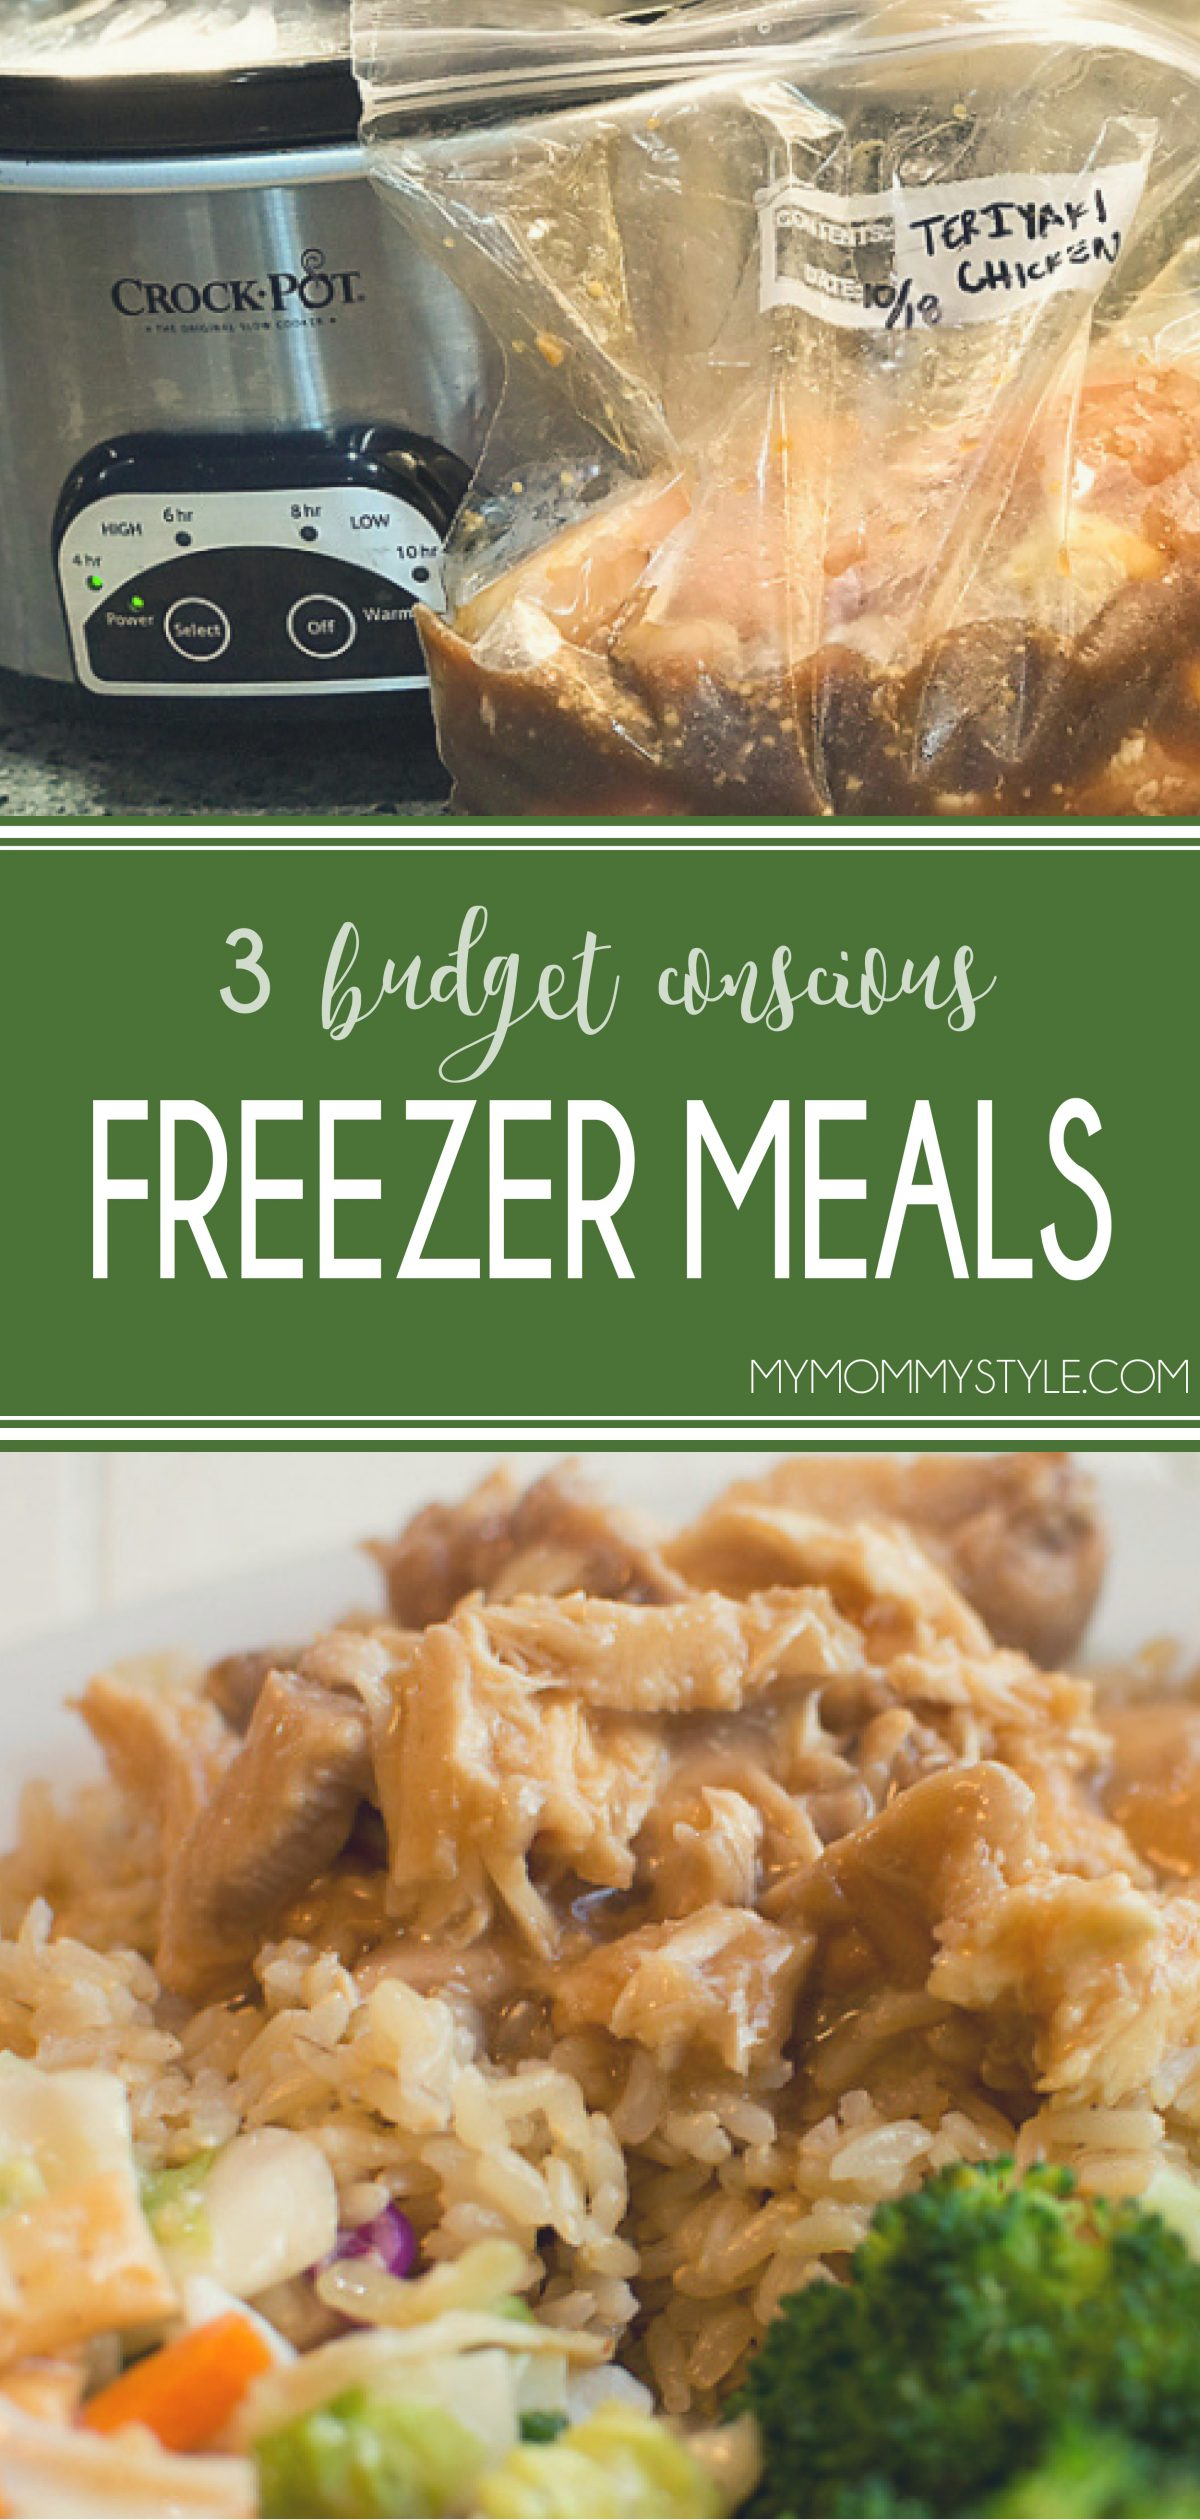 How to get the best bang for your buck when choosing budget conscious freezer meals via @mymommystyle